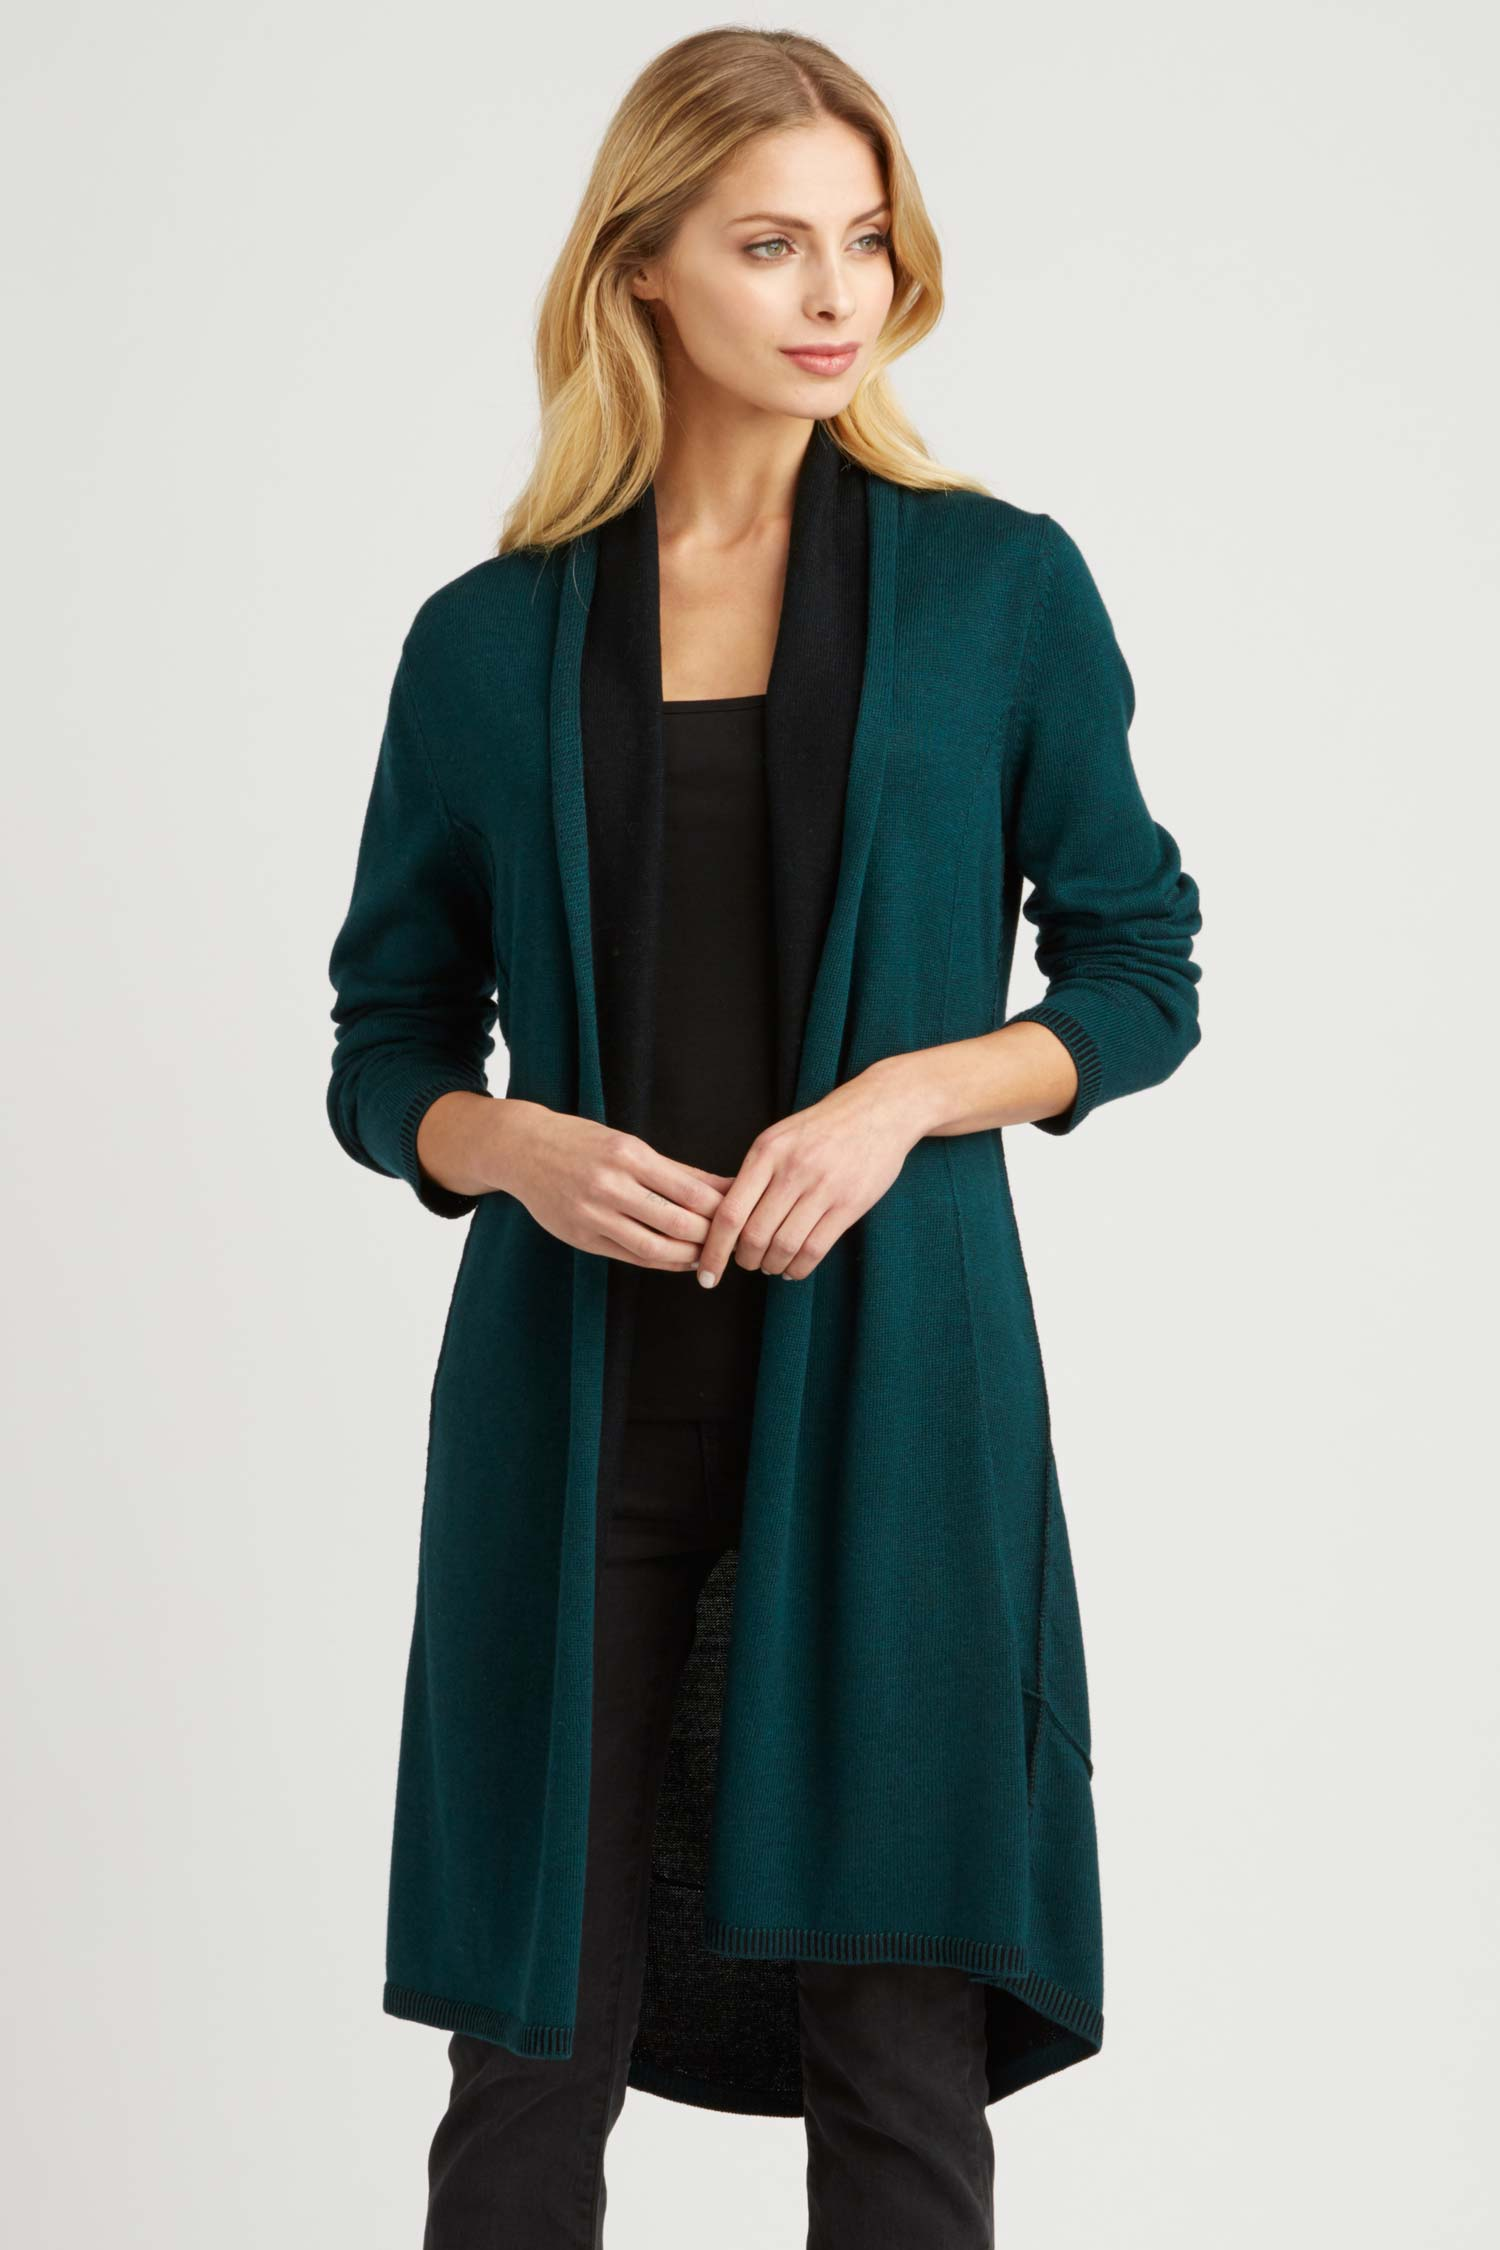 Womens Luxury Reversible Cardigan | Jade Teal Black